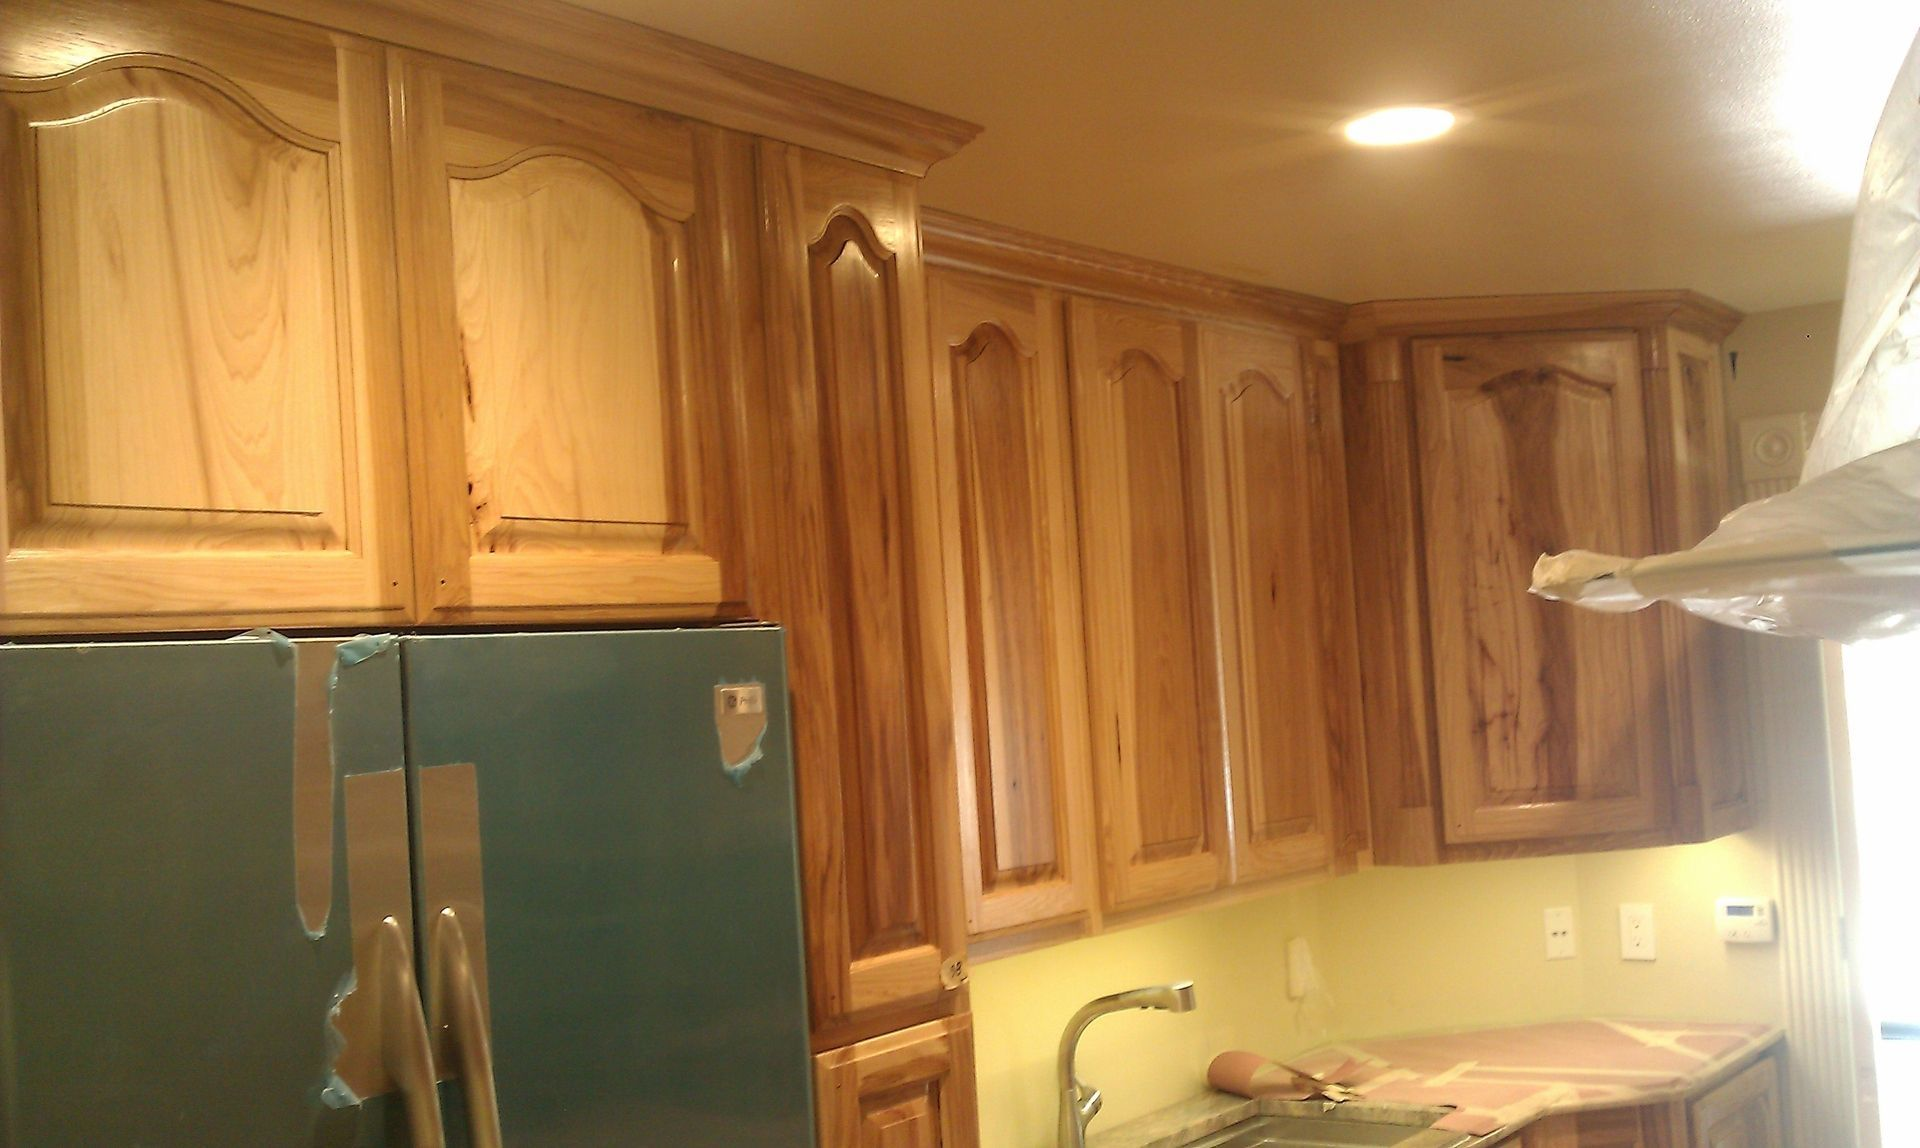 assembled kitchen cabinets assembled hickory kitchen cabinets kitchen storage organization cabinets hickory